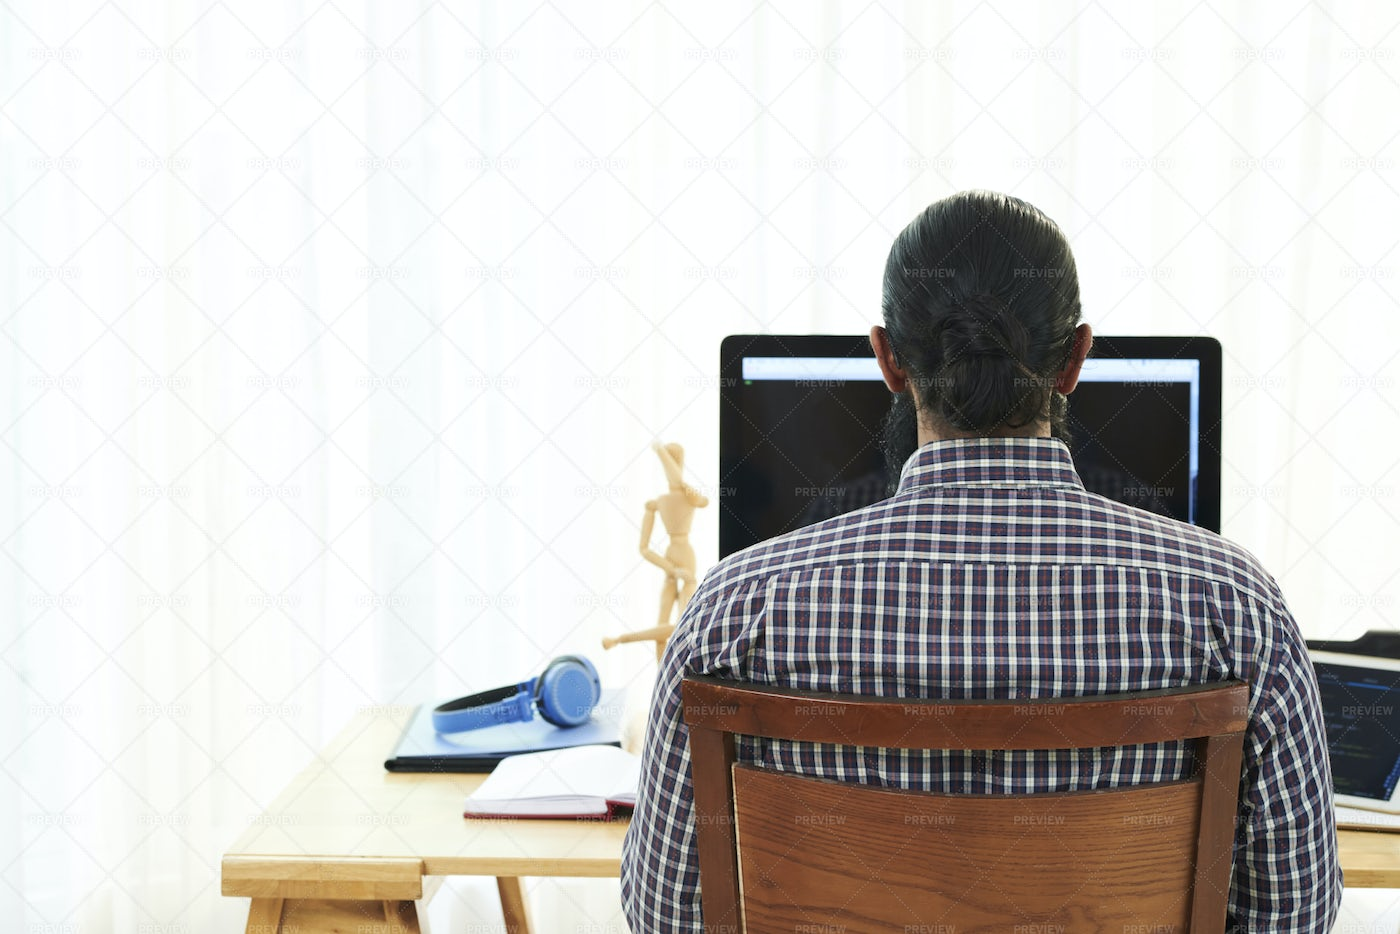 Man Working On Computer At Office: Stock Photos